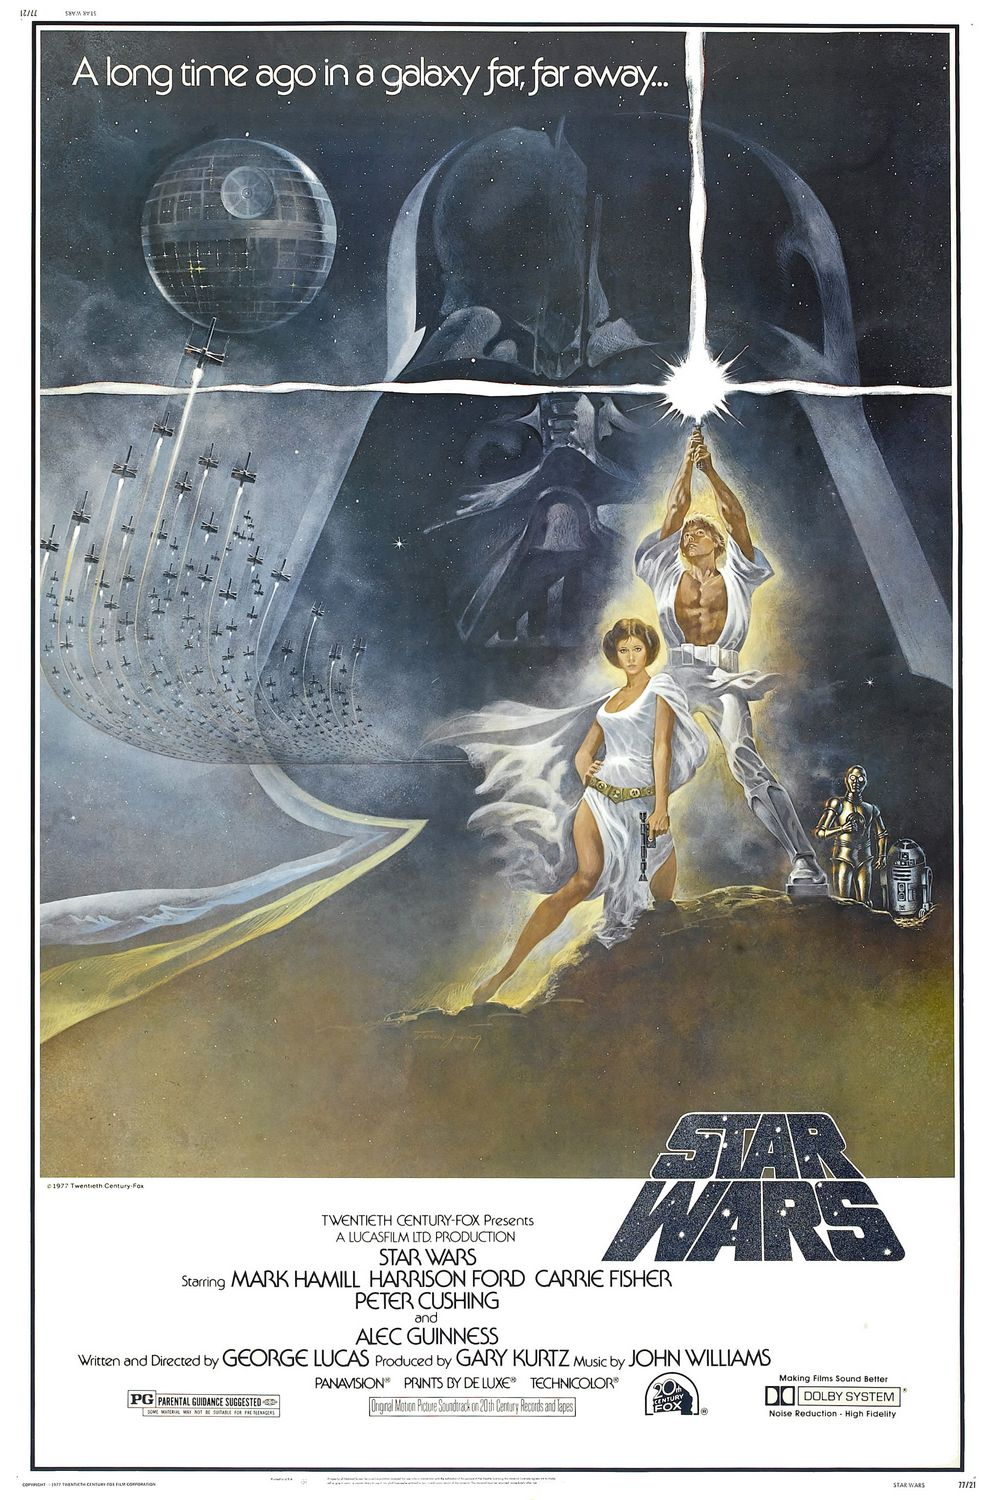 1977 Star Wars movie poster